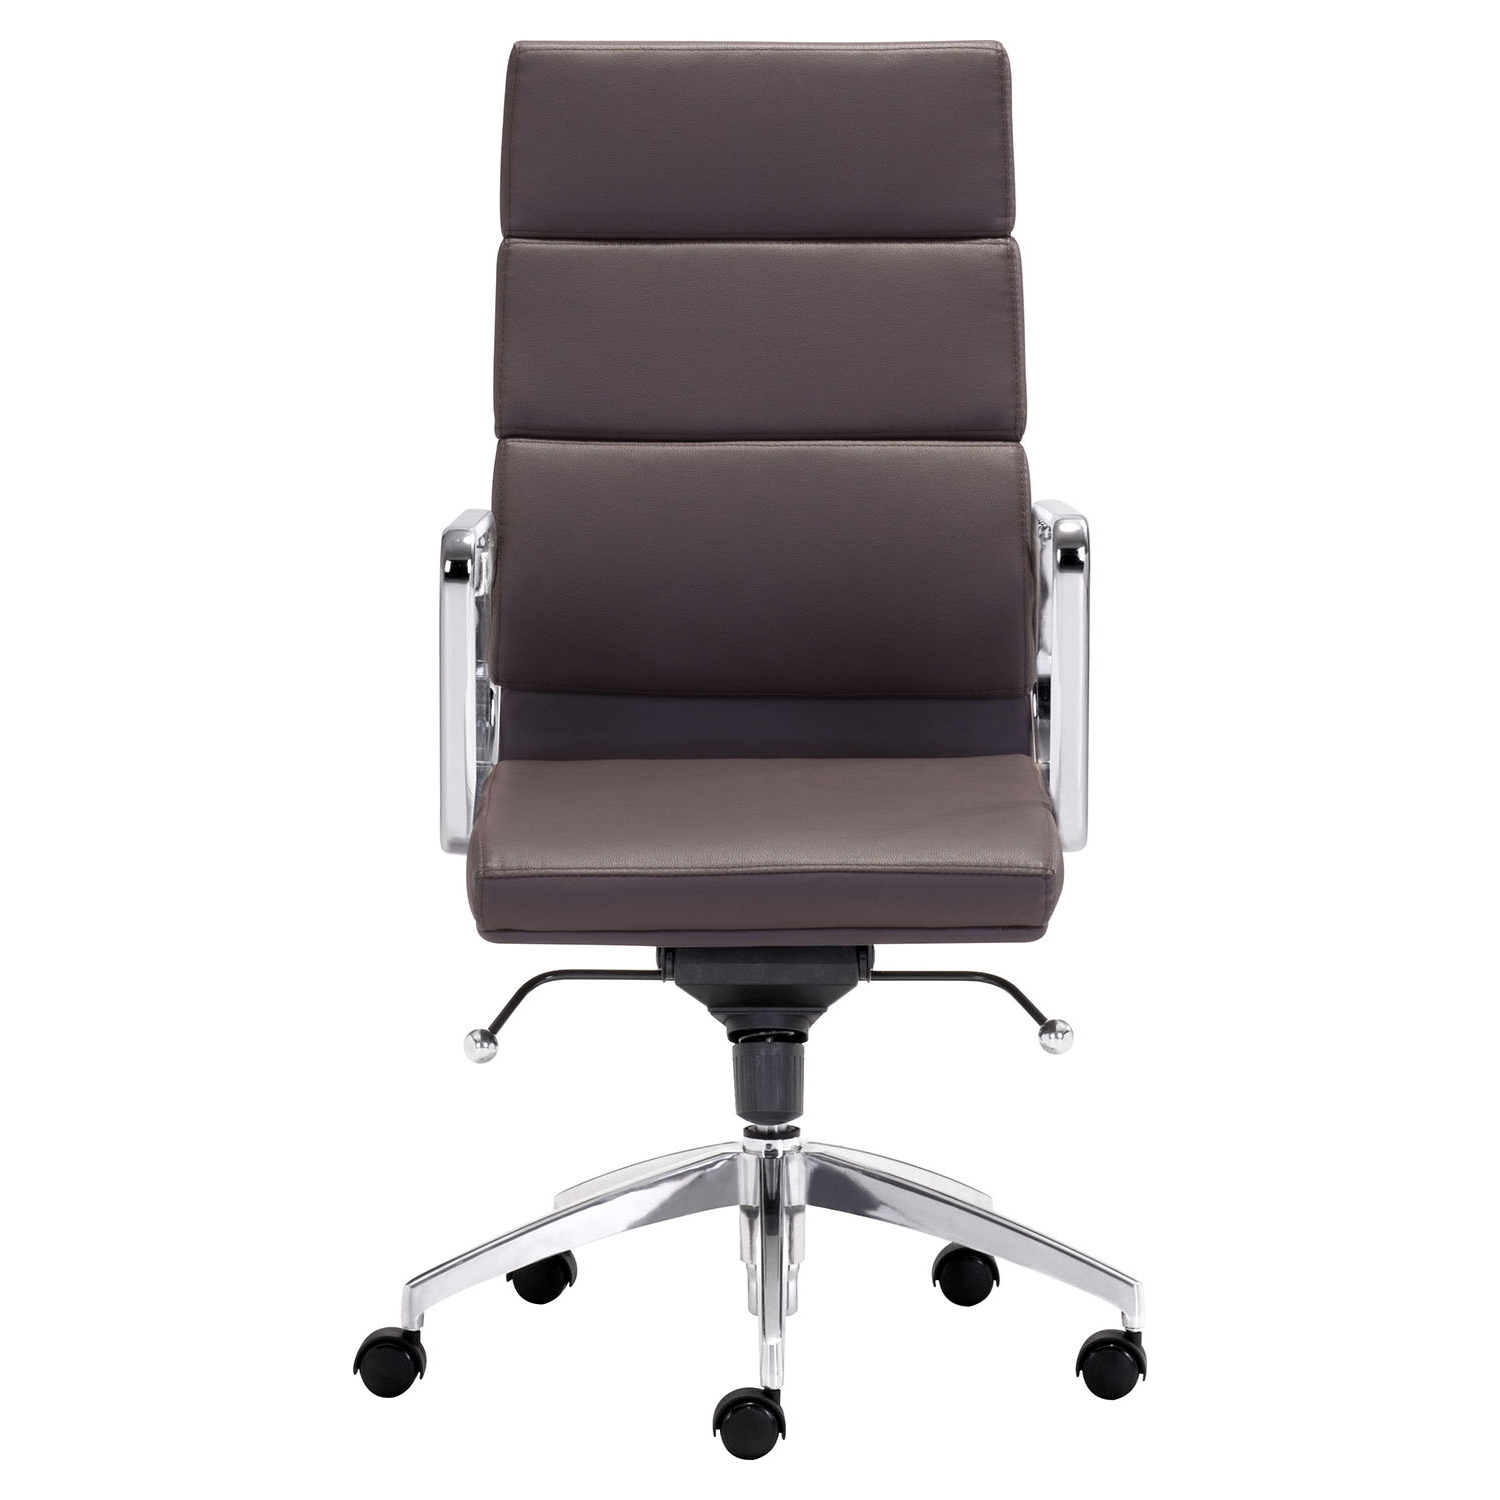 Engineer High Back Office Chair - Casters, Espresso